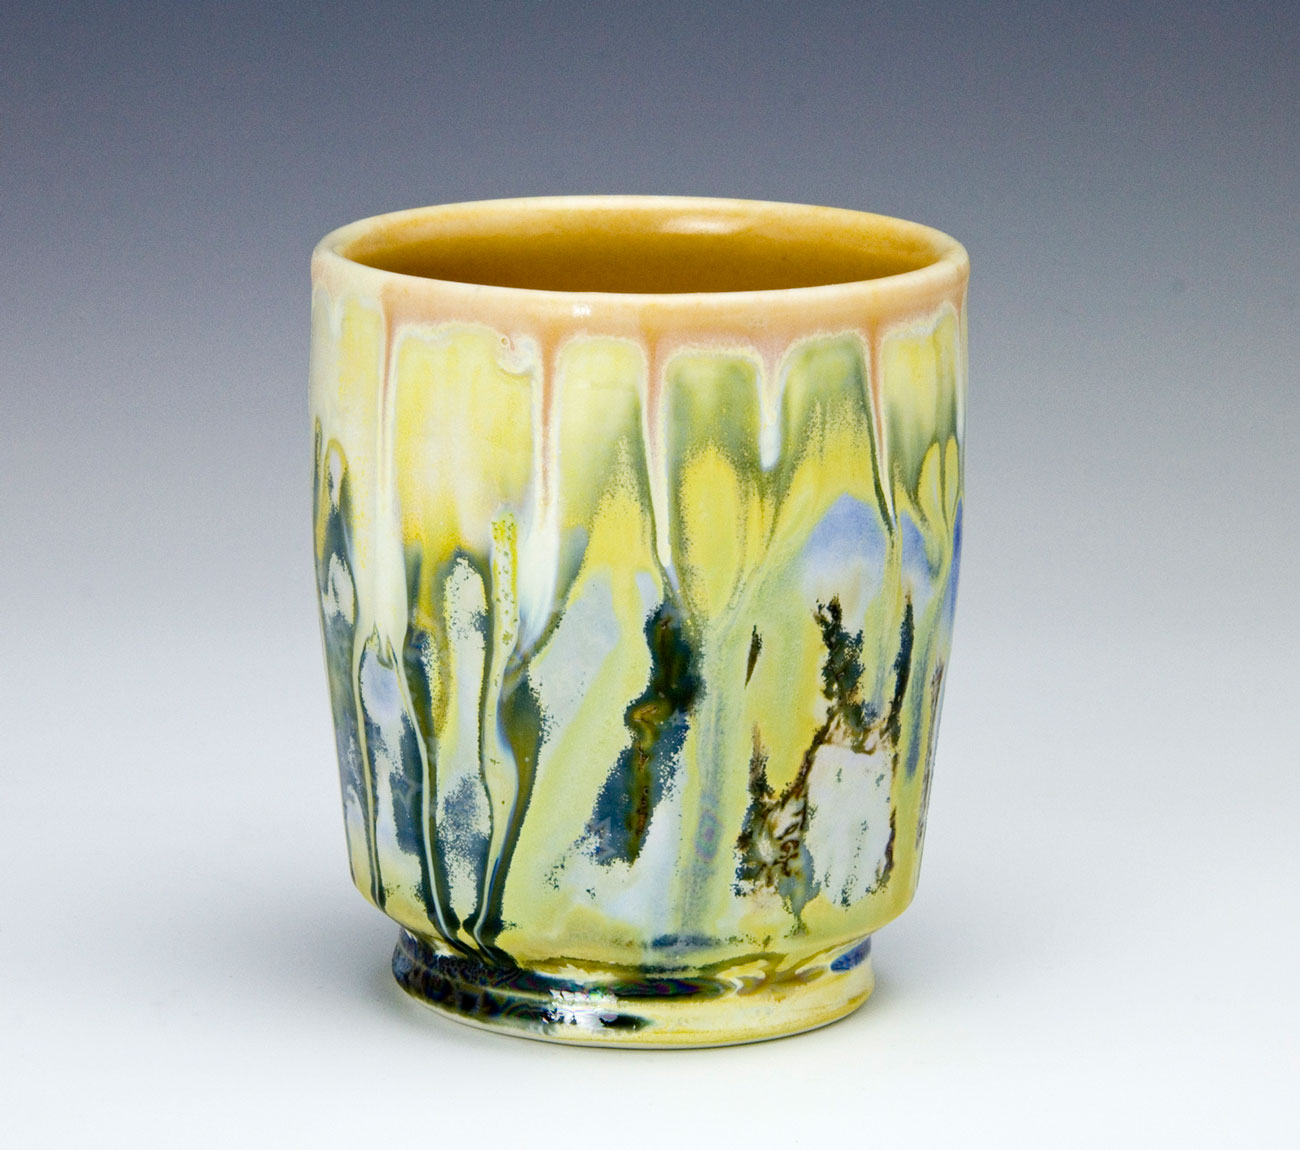 Hand-crafted-art-flow-cup.jpg